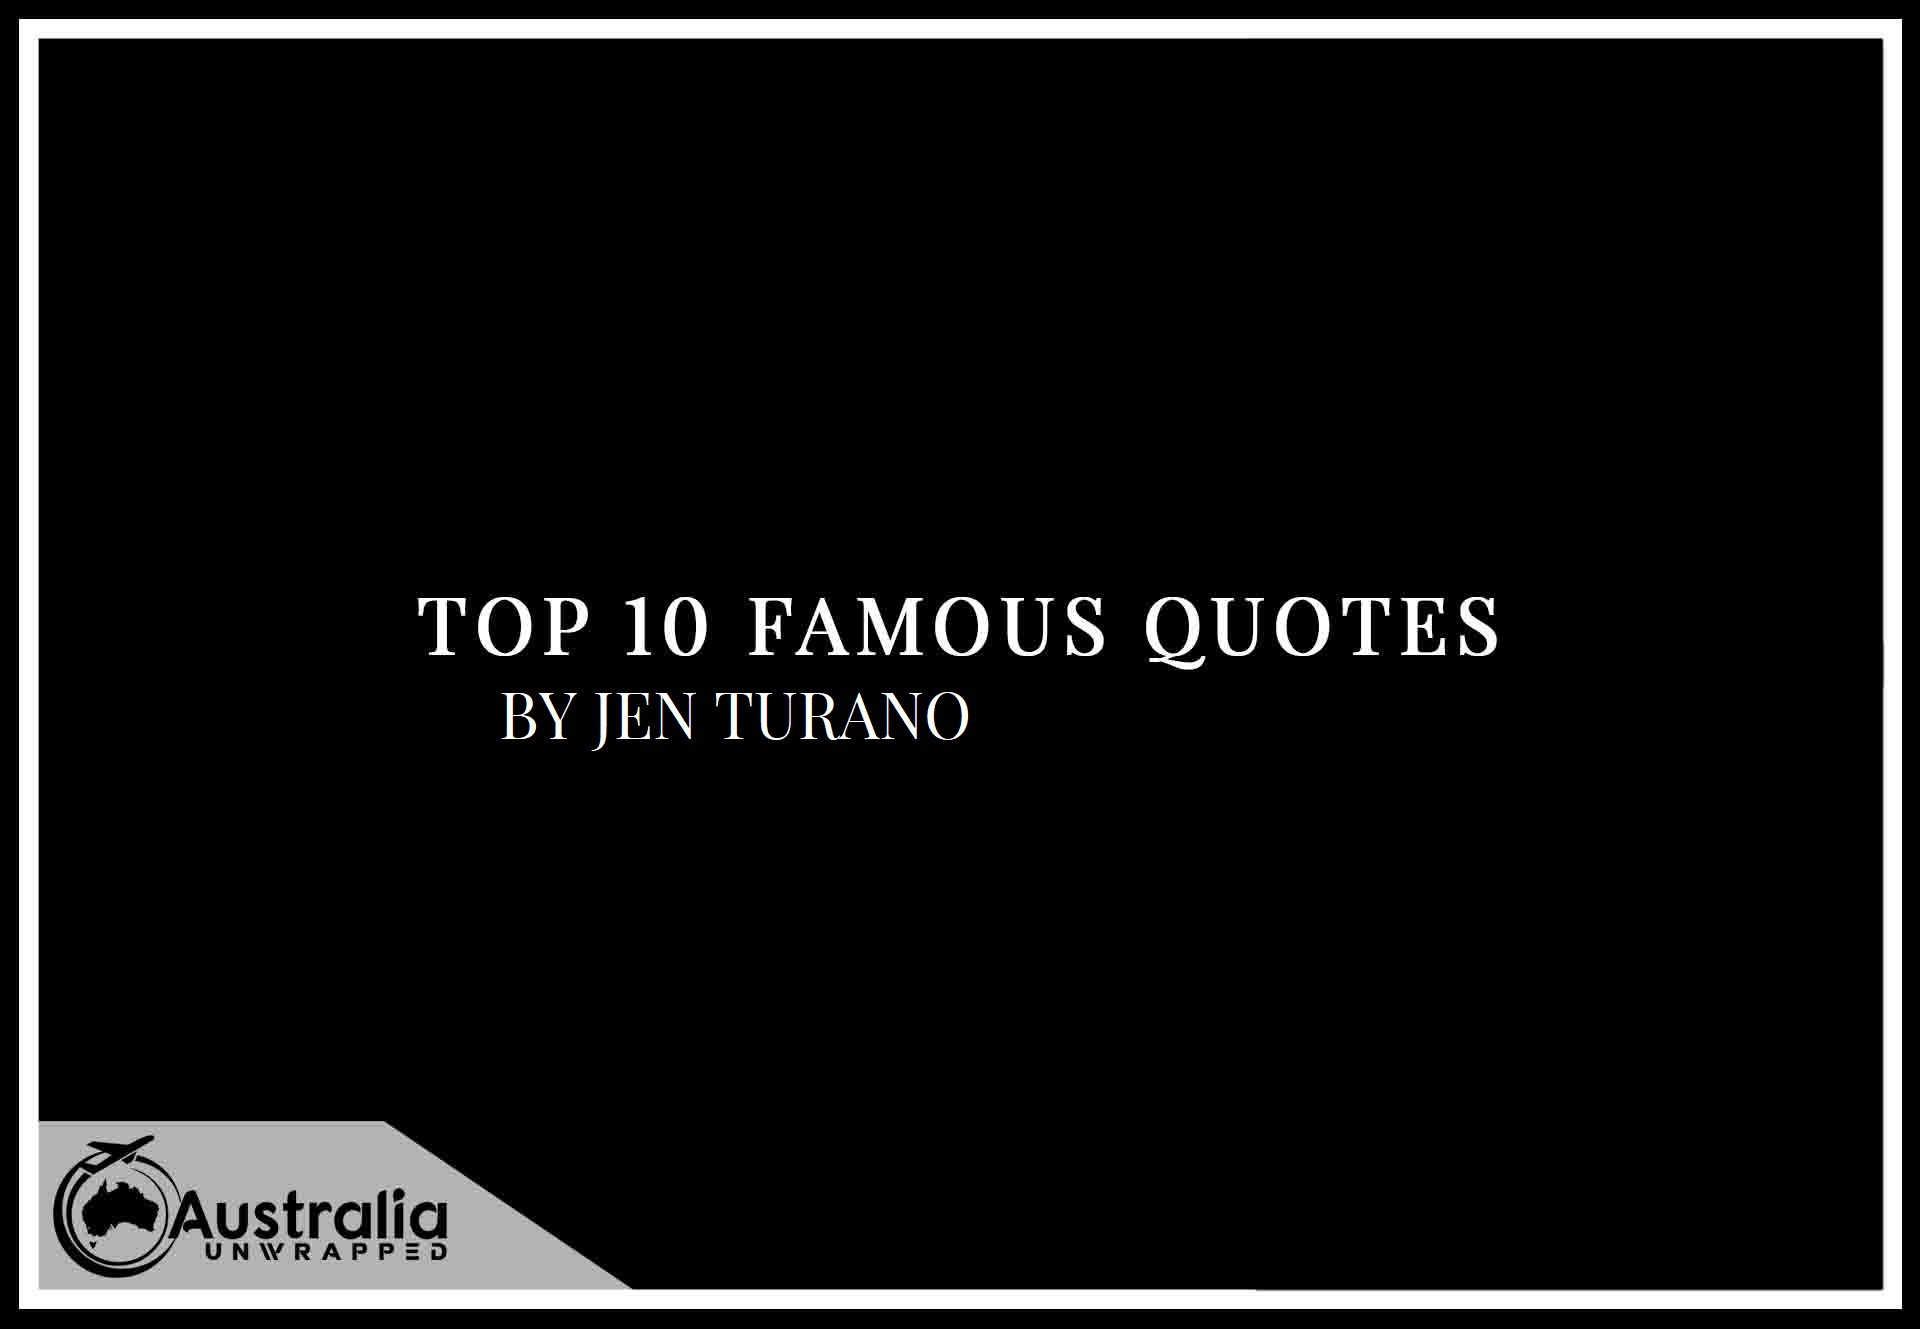 Top 10 Famous Quotes by Author Jen Turano